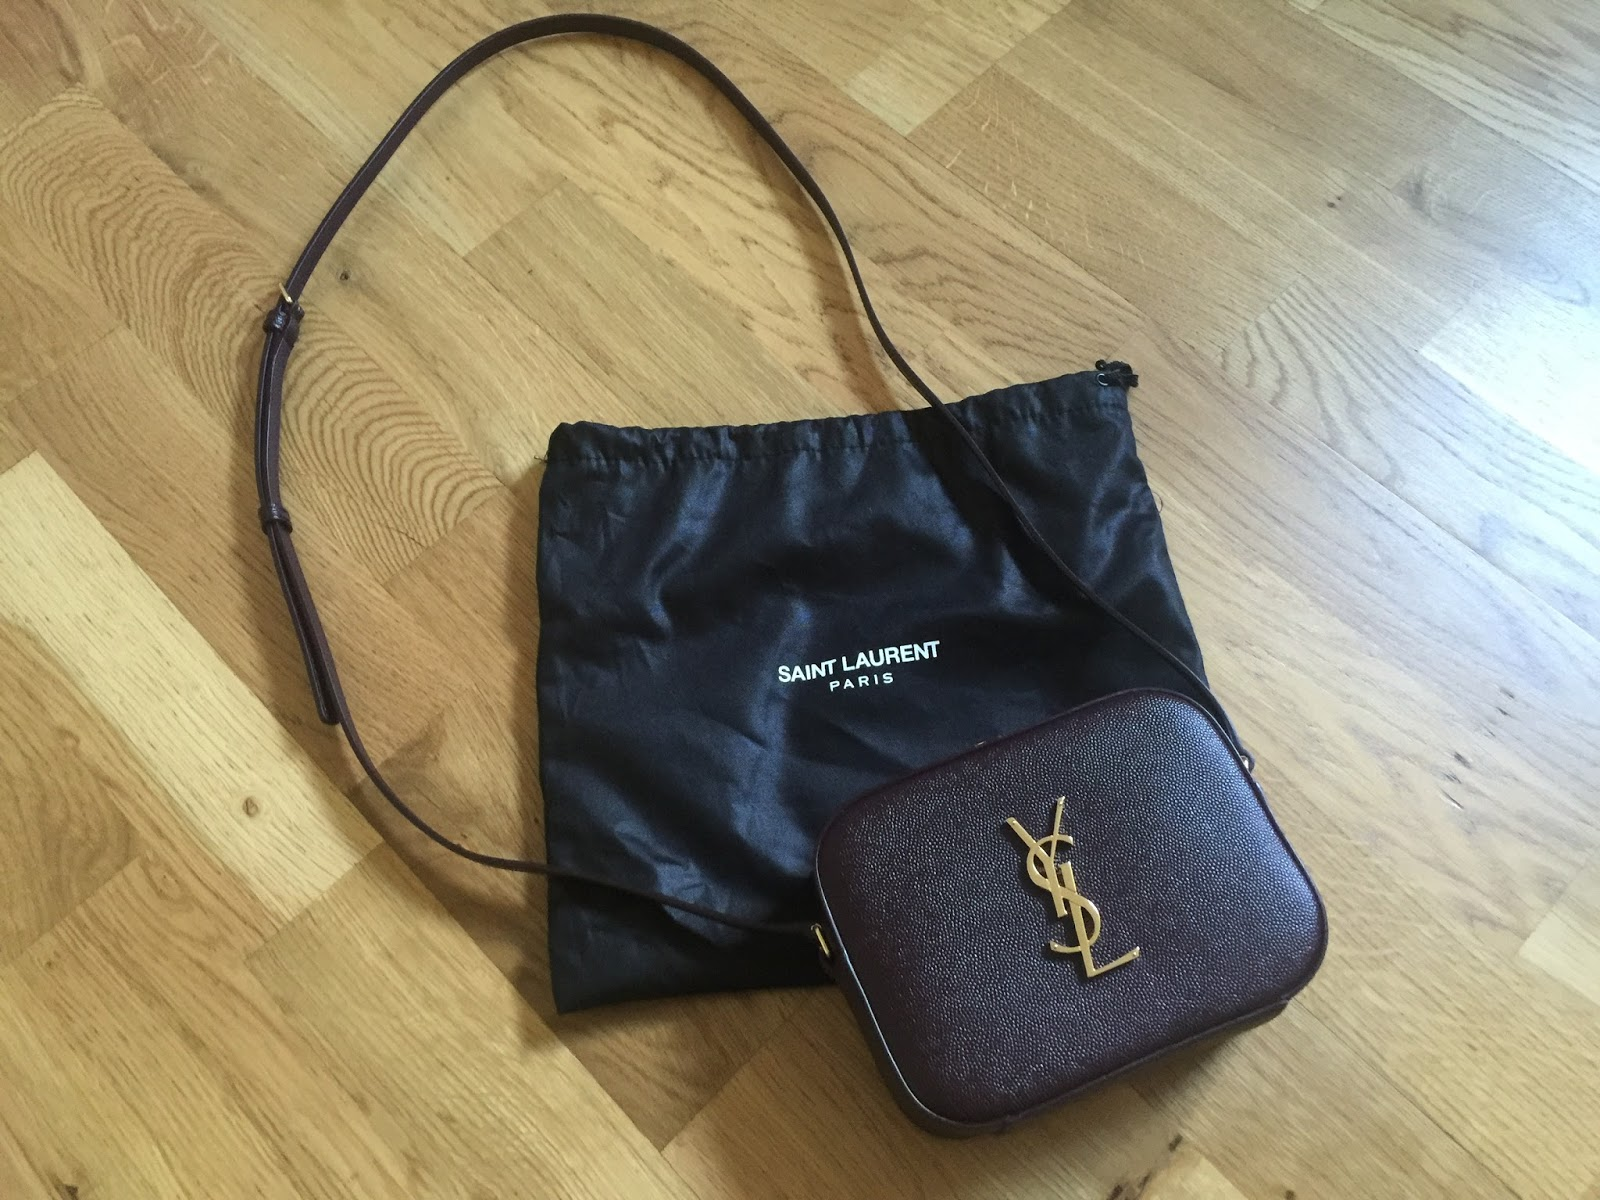 saint laurent bag review